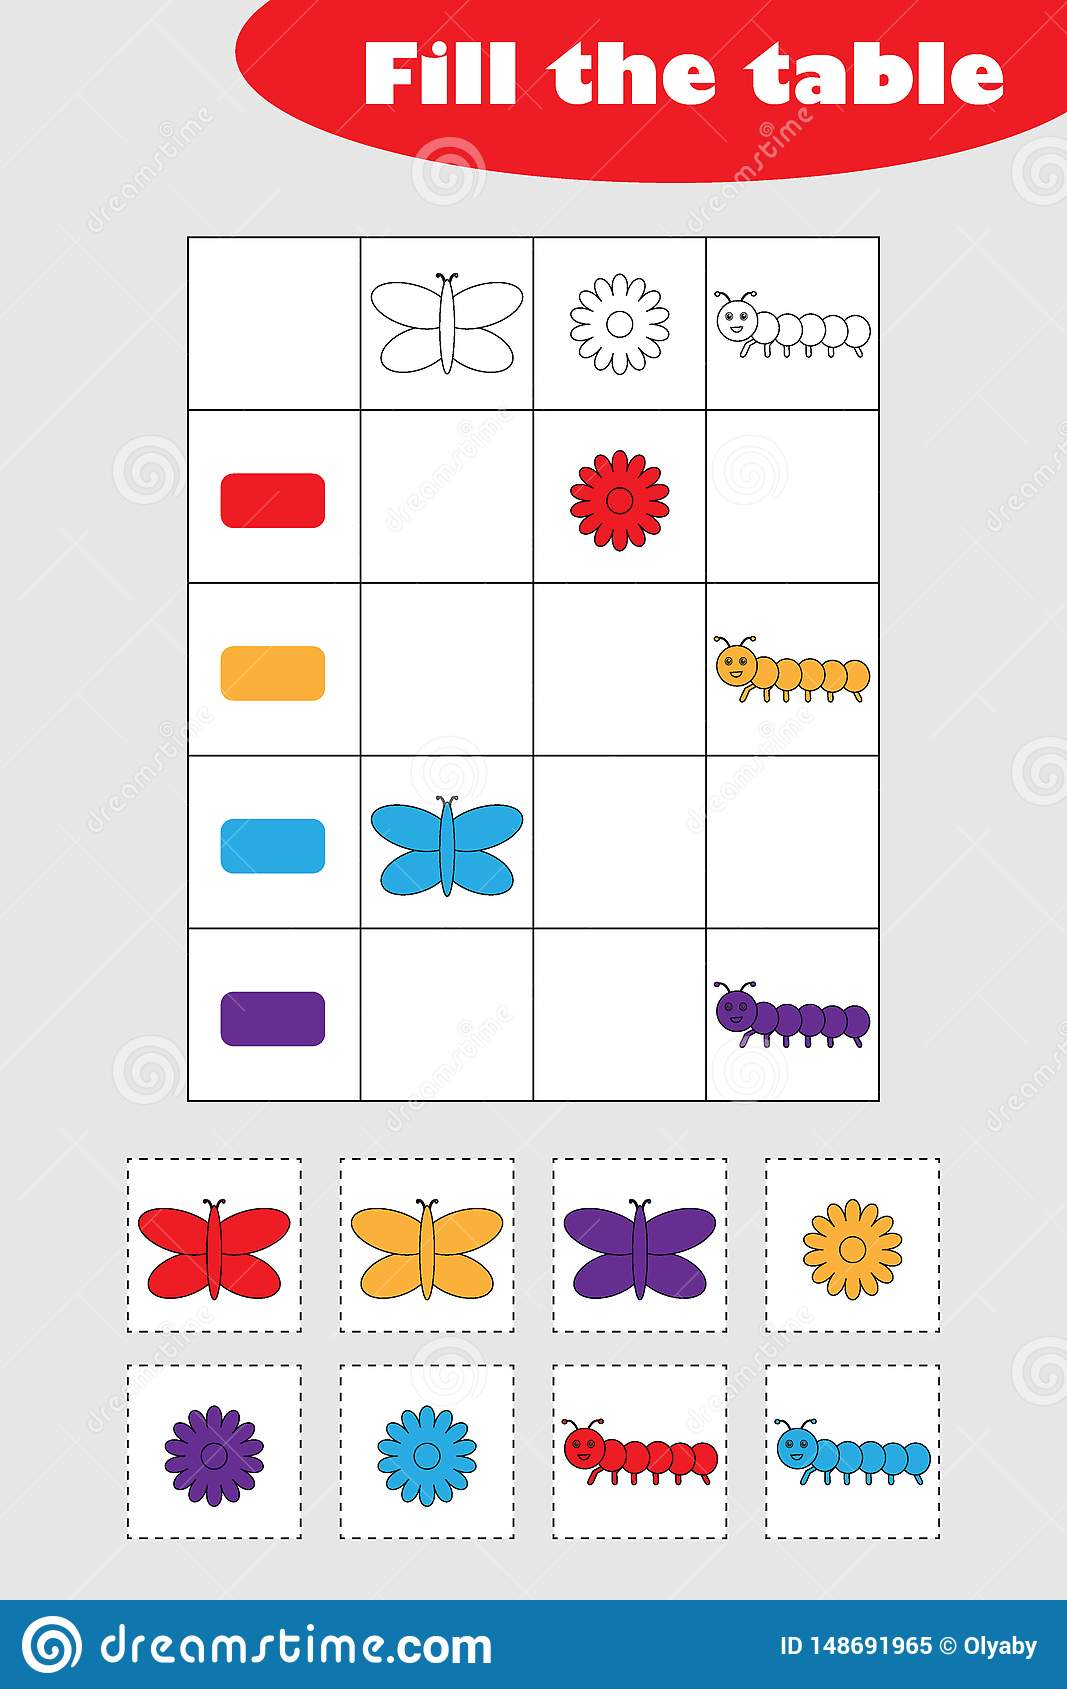 Fill The Table With Colorful Spring Pictures For Children